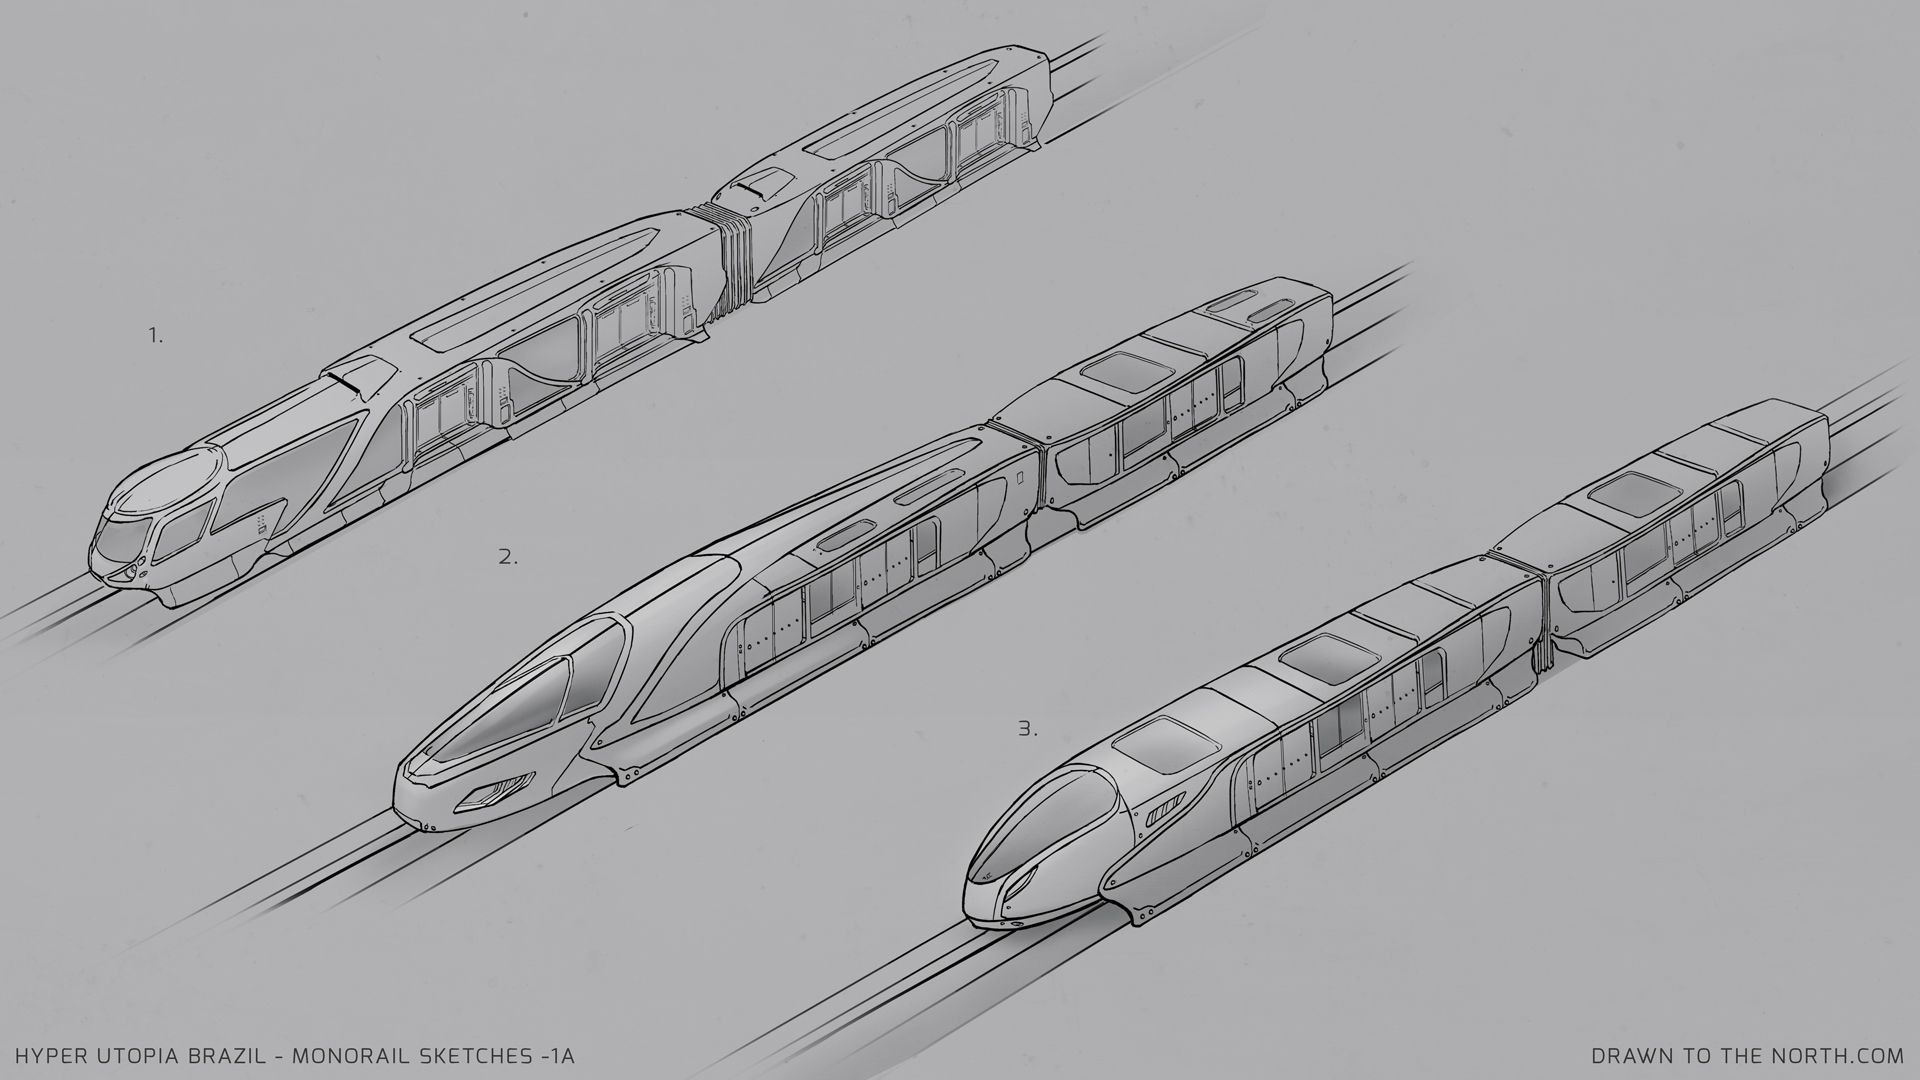 Here's some monorail design sketches for a personal project based in a Utopian city. #monorail #designsketch #vehicledesign #conceptdesign #propconceptart #filmconcept #propdesign